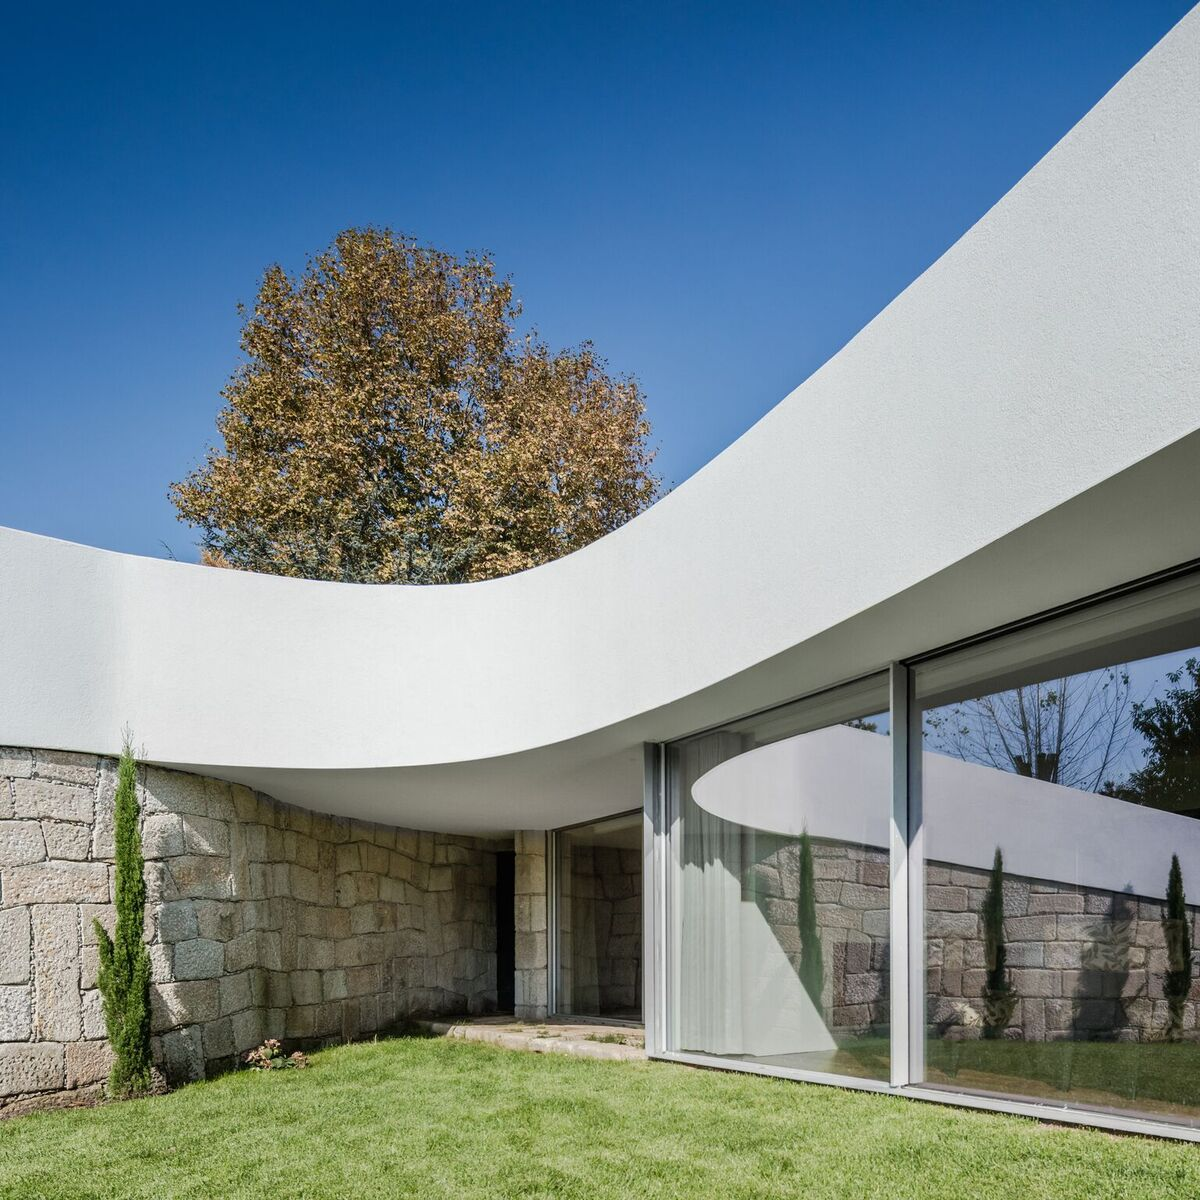 The southern part of the house featured this curving roof which extends to form a sun shade